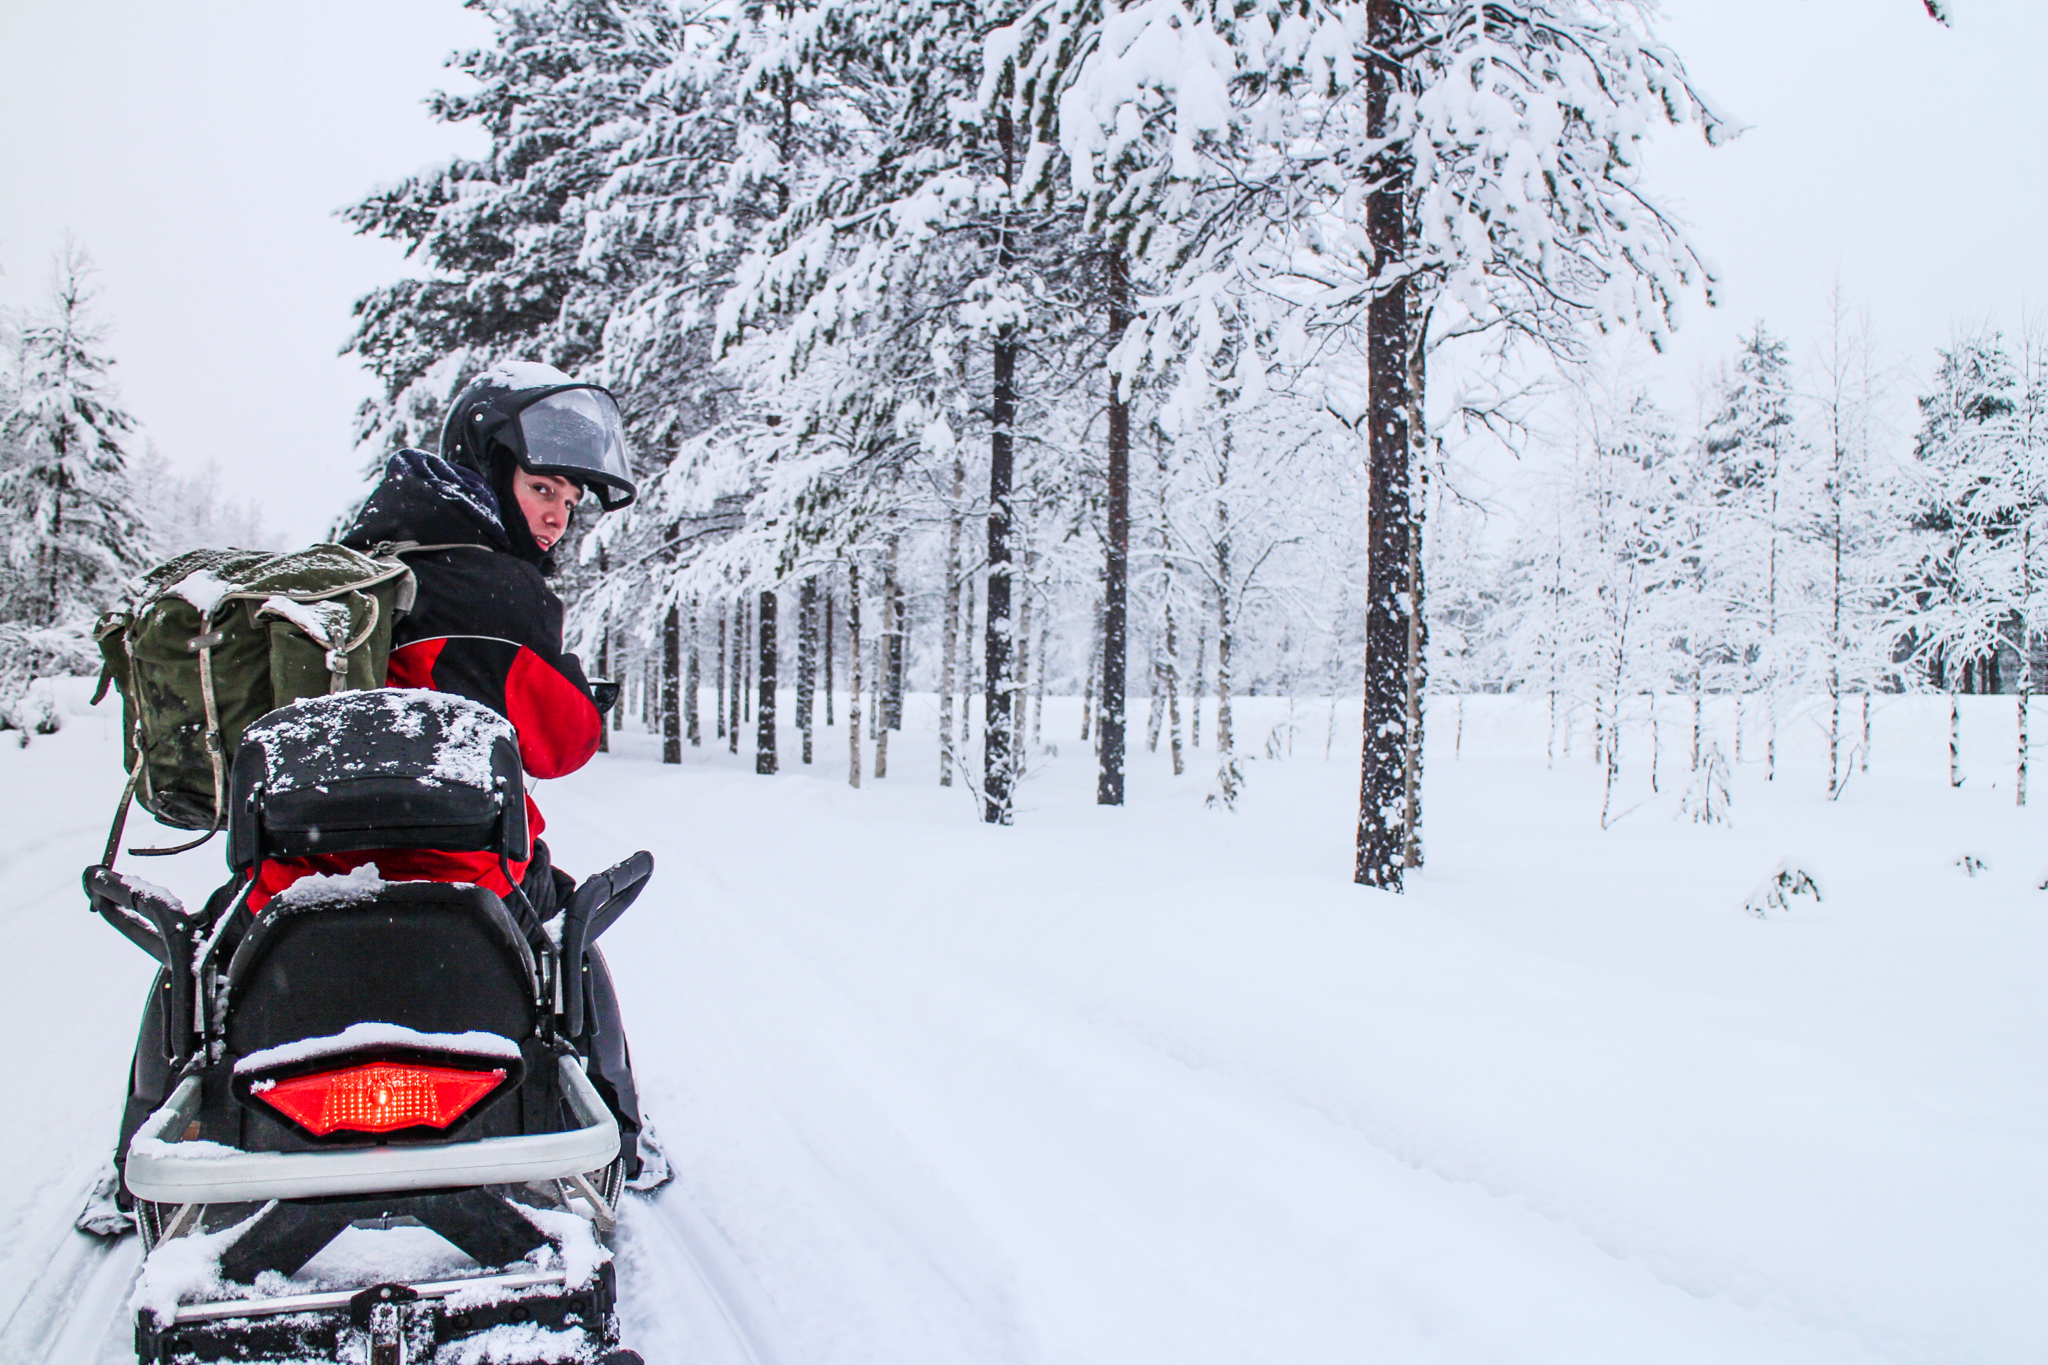 person on a snowmobile in snowy forest